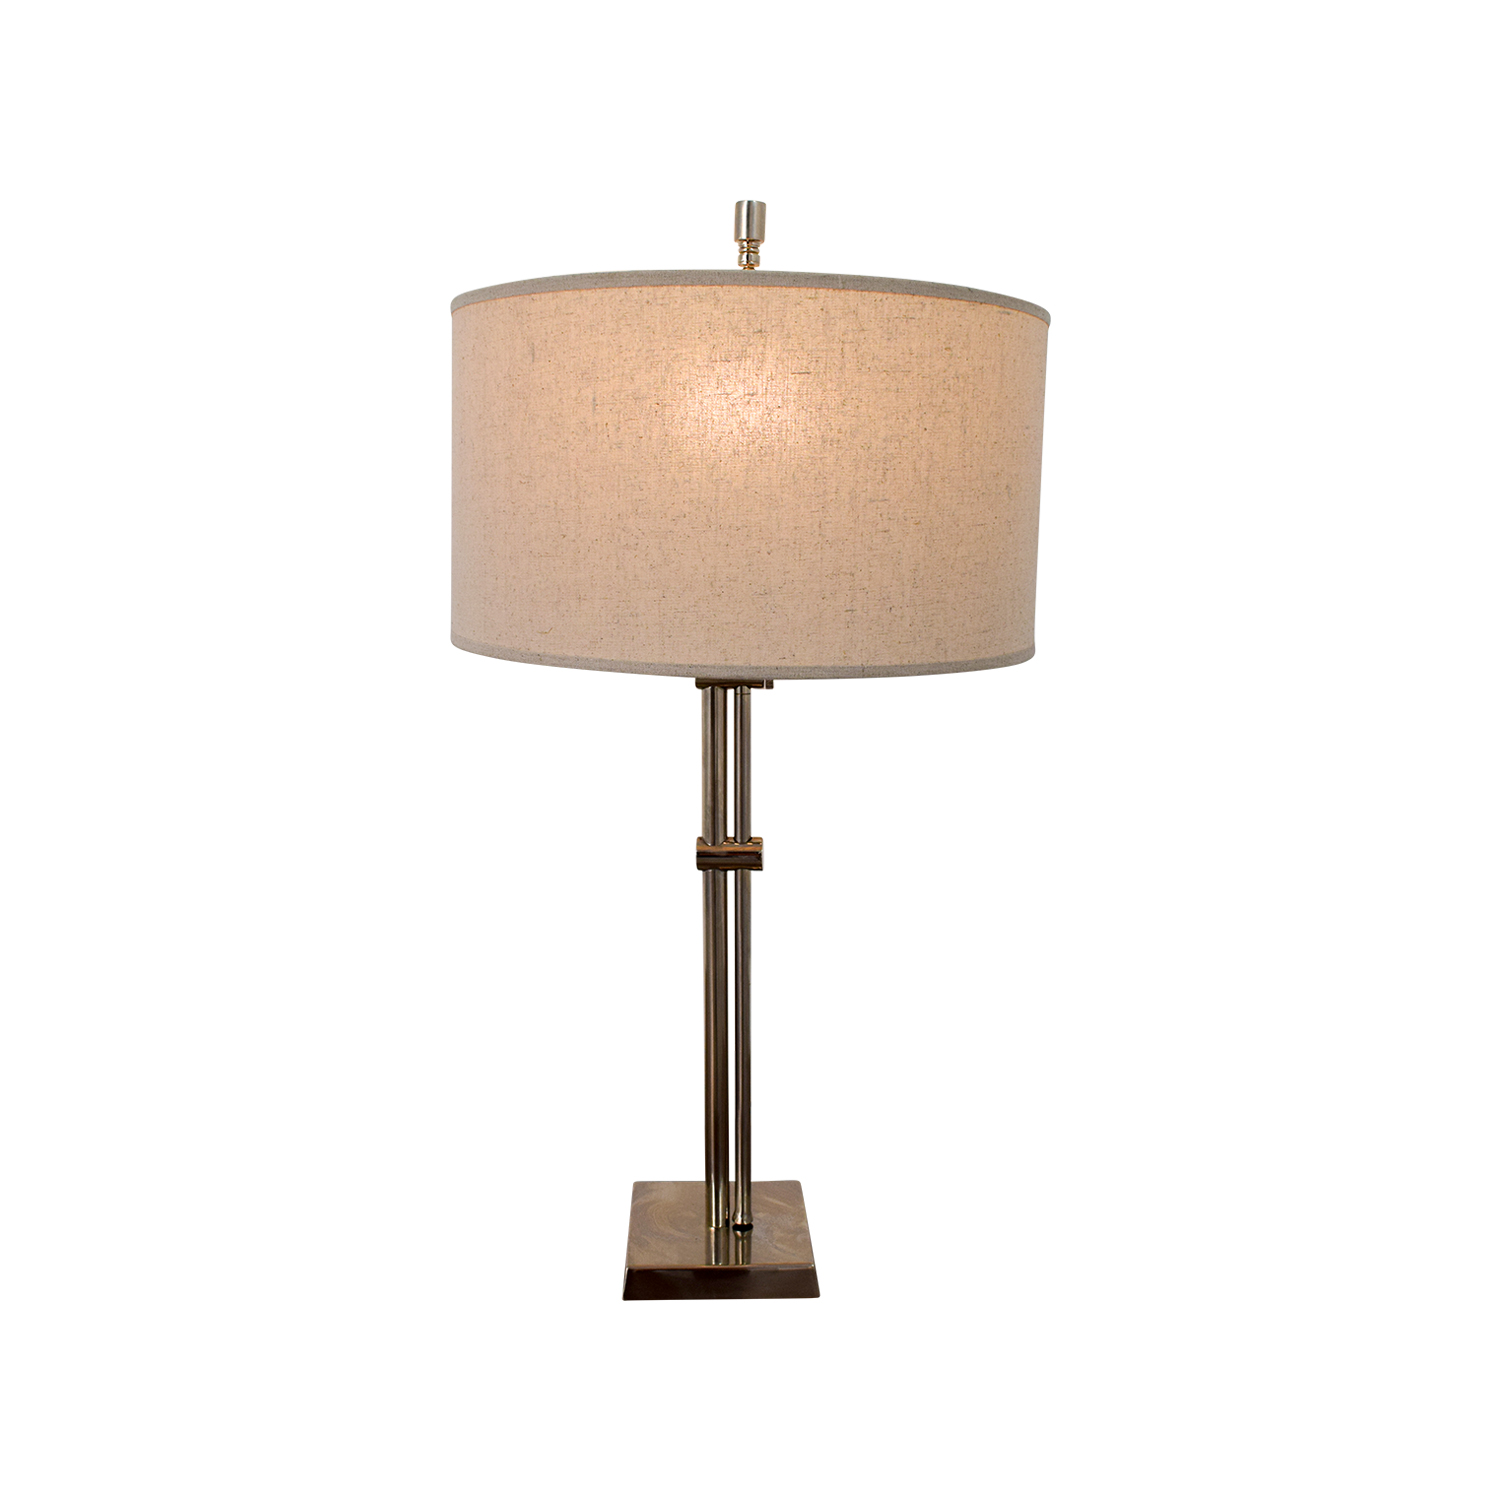 Restoration hardware lighting coupon lighting ideas for Restoration hardware bedside tables